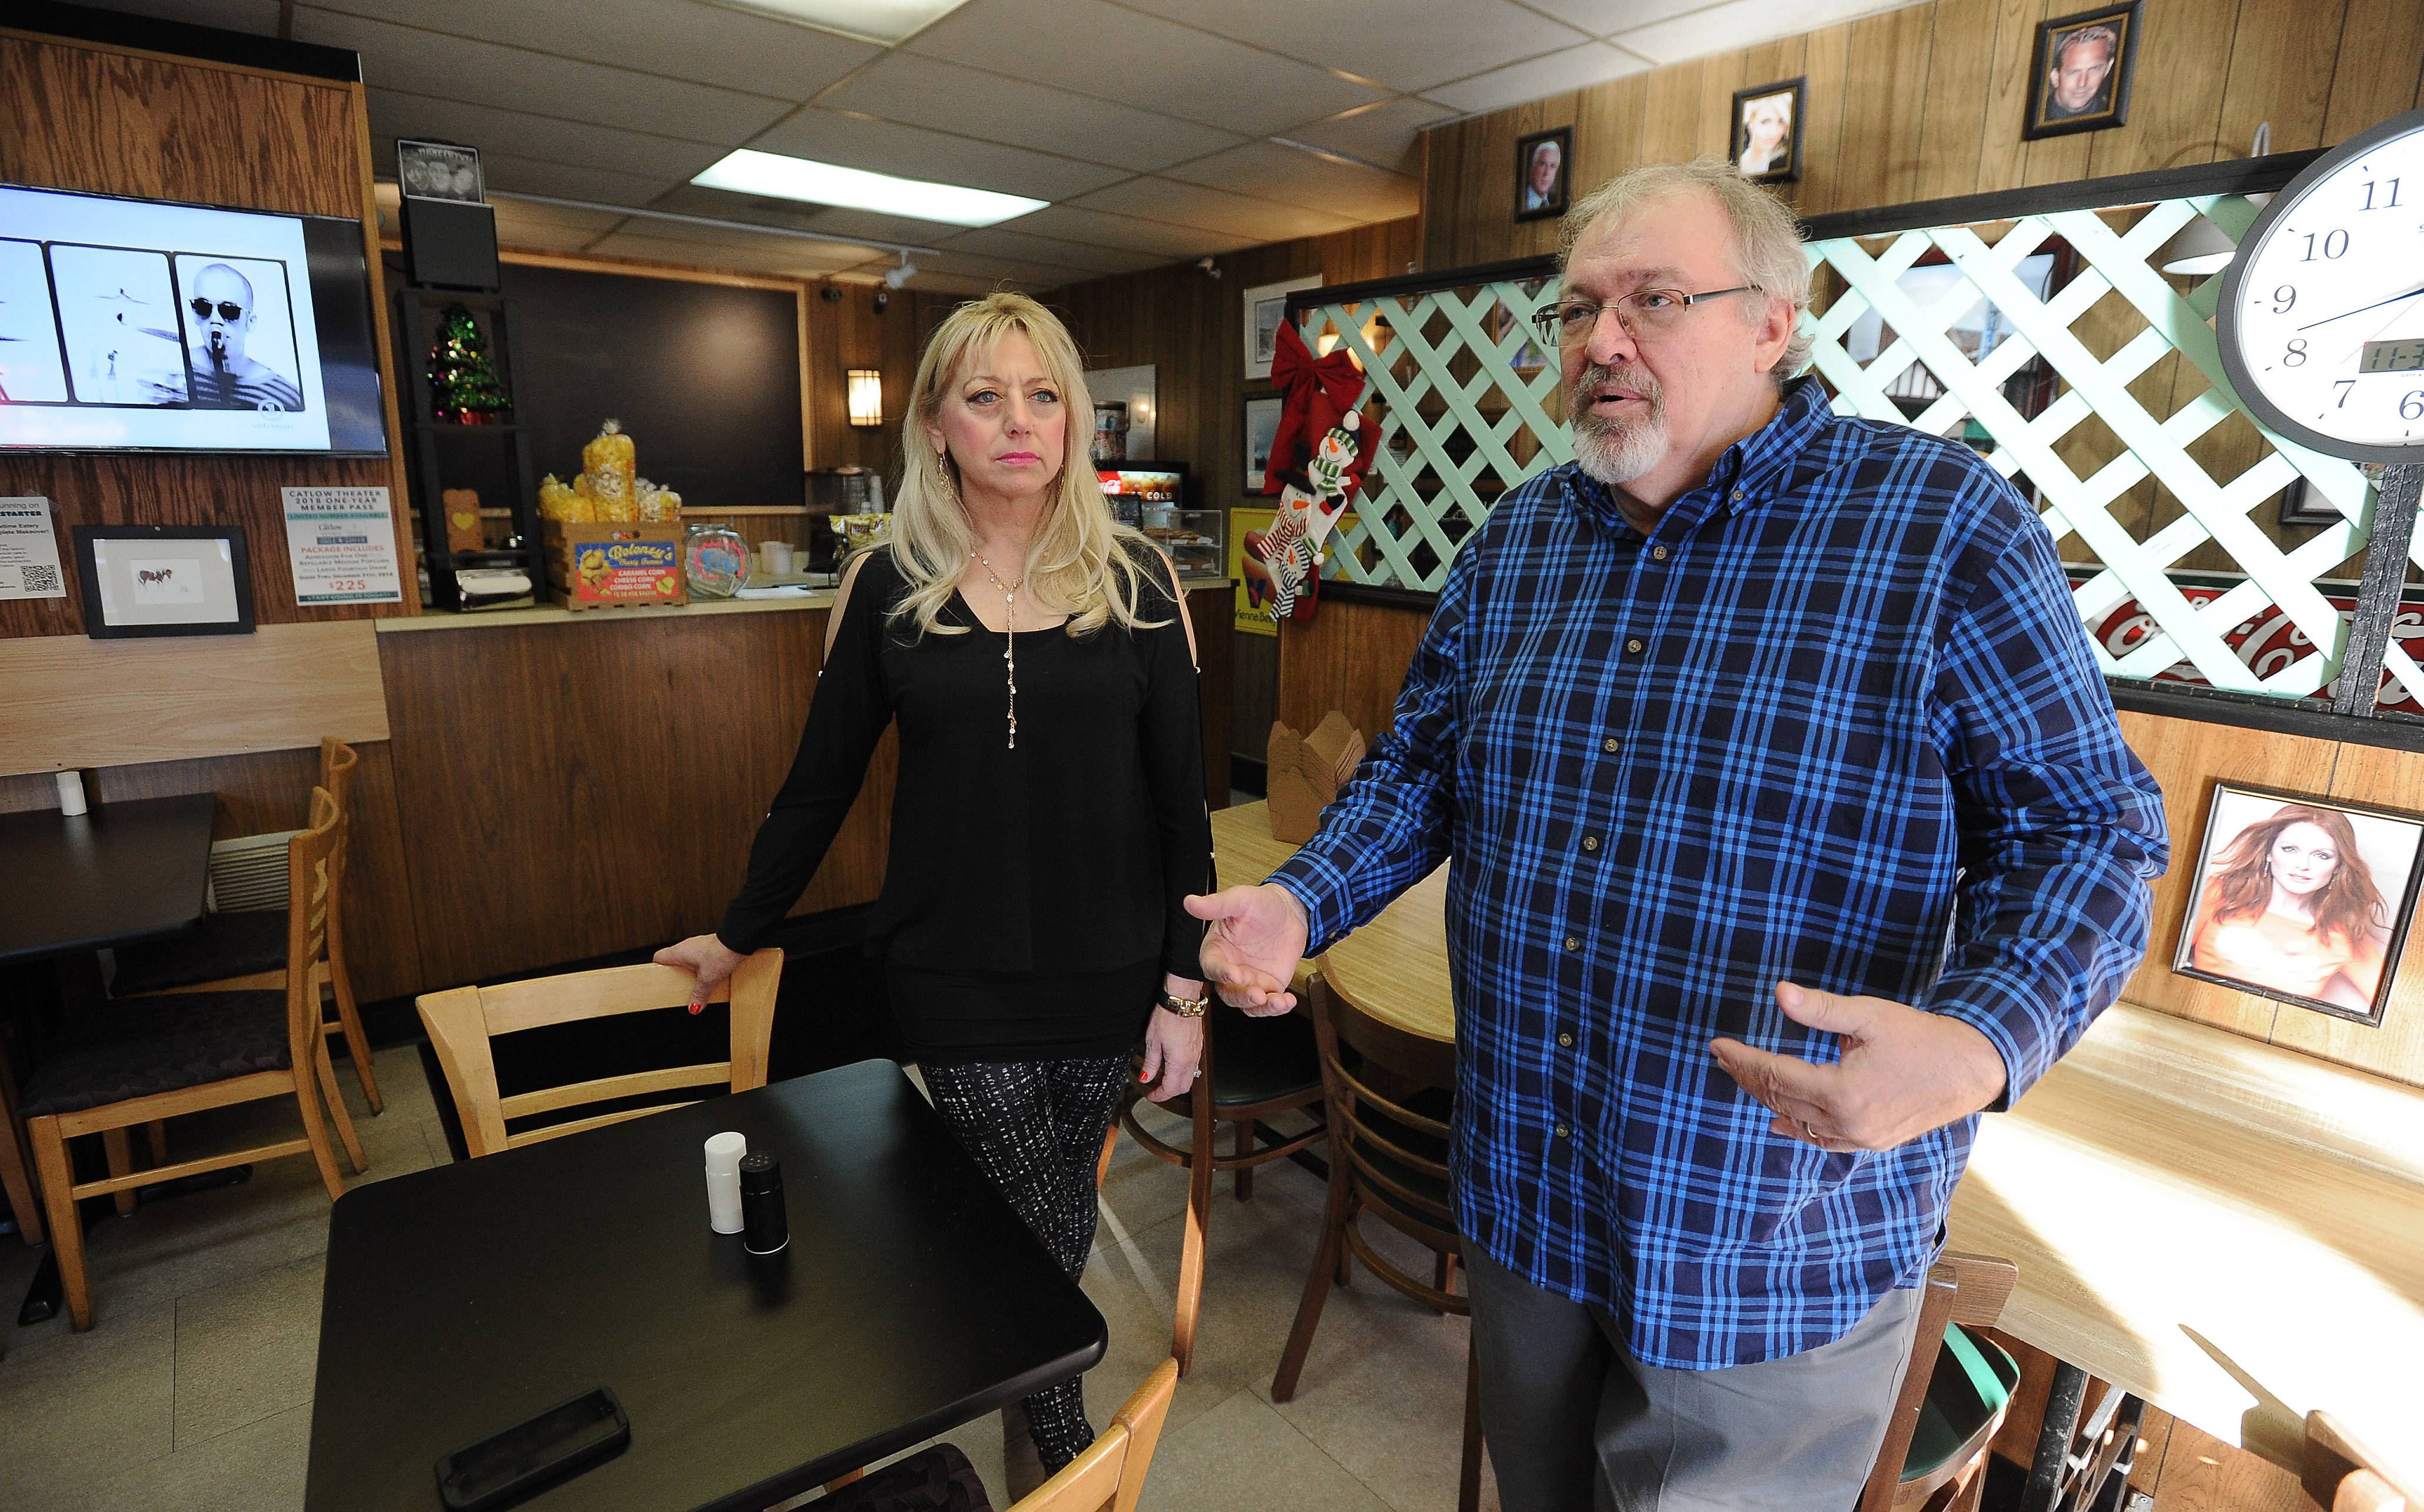 Tim O'Connor, owner of the Catlow Theater and the adjacent Showtime Eatery in downtown Barrington, and wife Laura hope to raise $40,000 in online contributions to help pay for restaurant improvements.